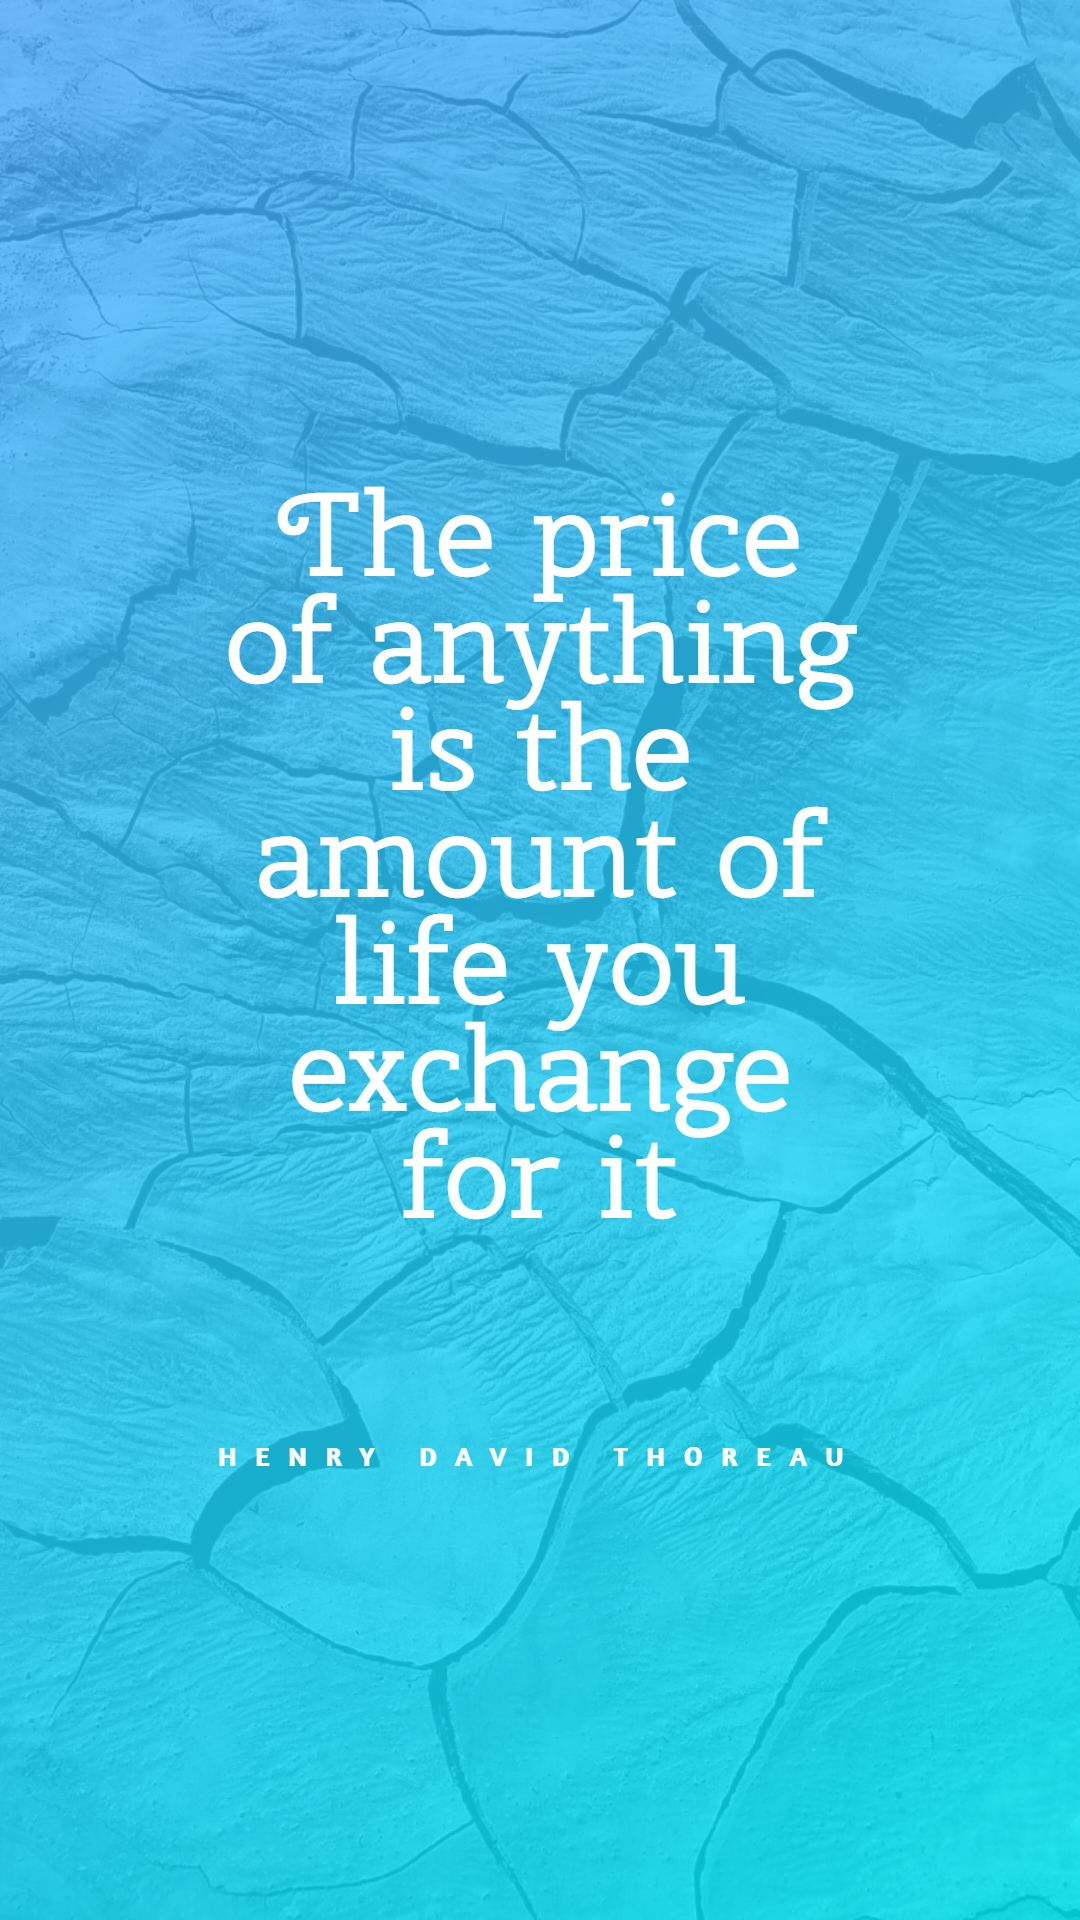 Quotes image of The price of anything is the amount of life you exchange for it